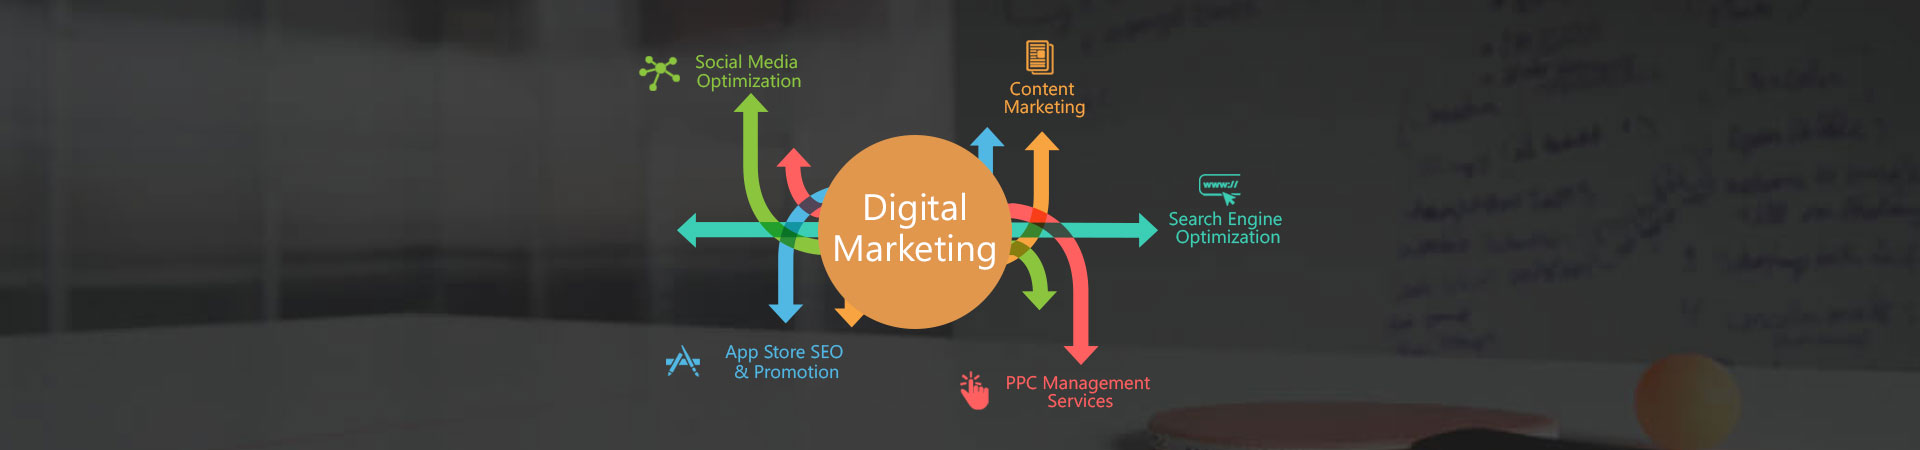 digital_marketing-link-dev